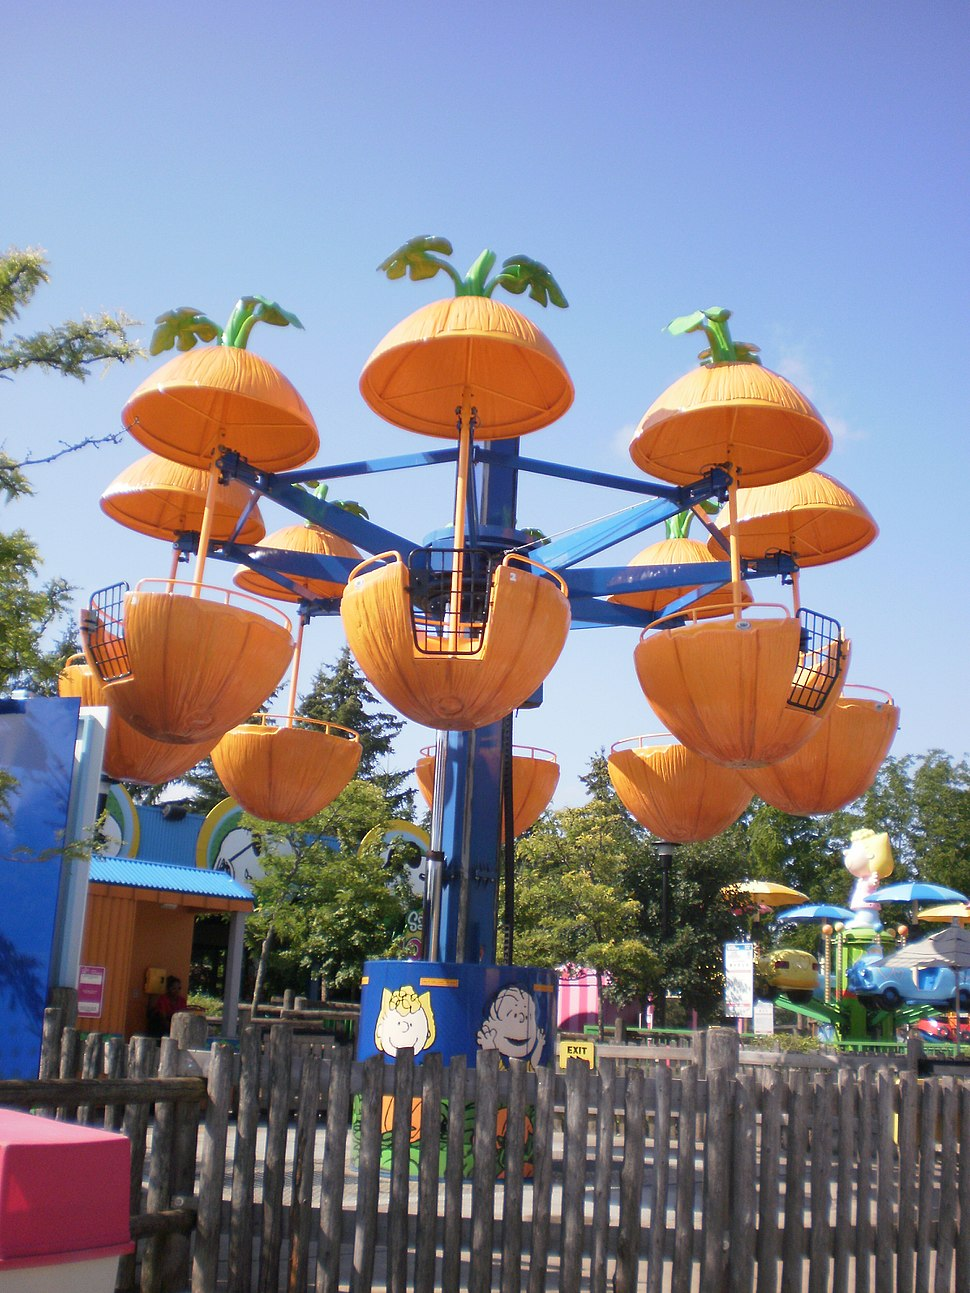 Canadas Wonderland Planet Snoopy Pumpkin Patch ride